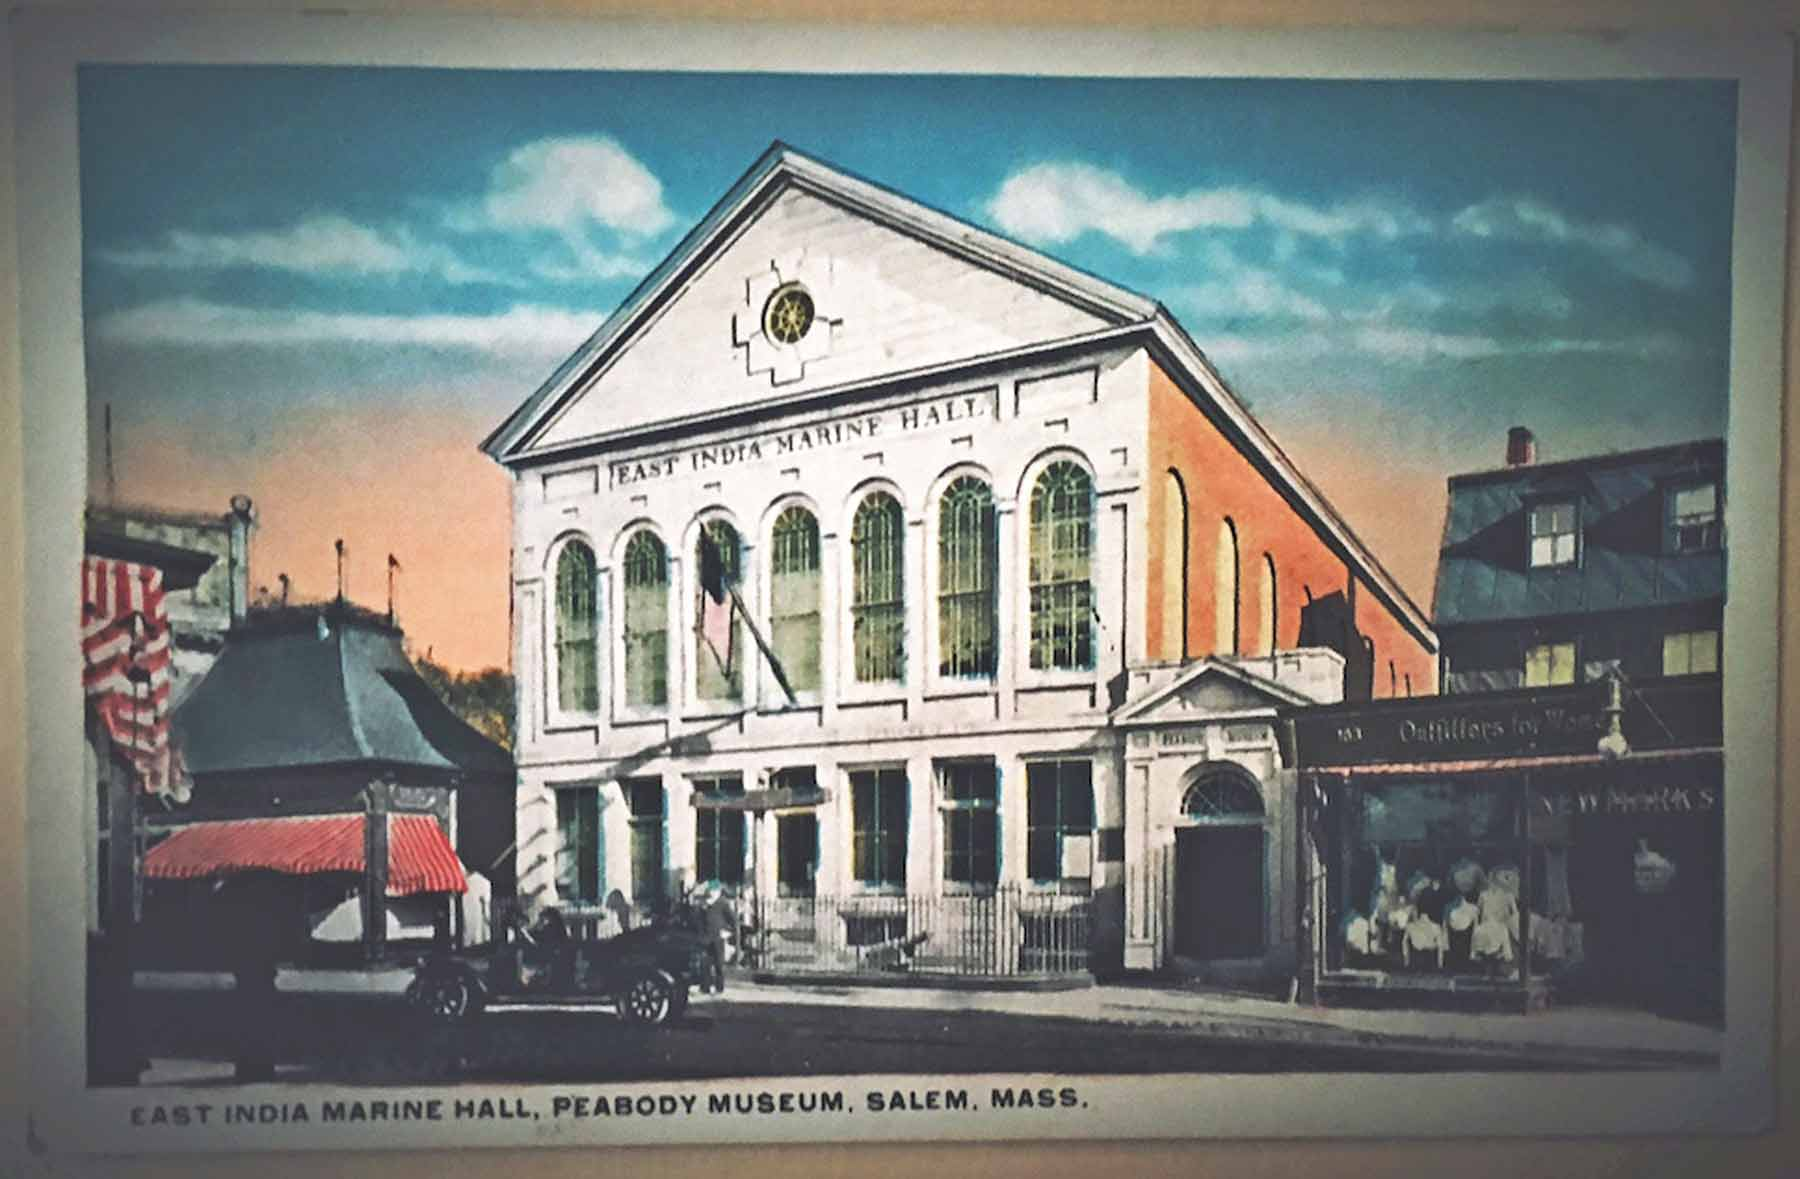 """White Border era (1915-1930) postcard of """"East India Marine Hall, Peabody Museum, Salem, Mass."""" from my personal collection. Photo by Paige Besse."""